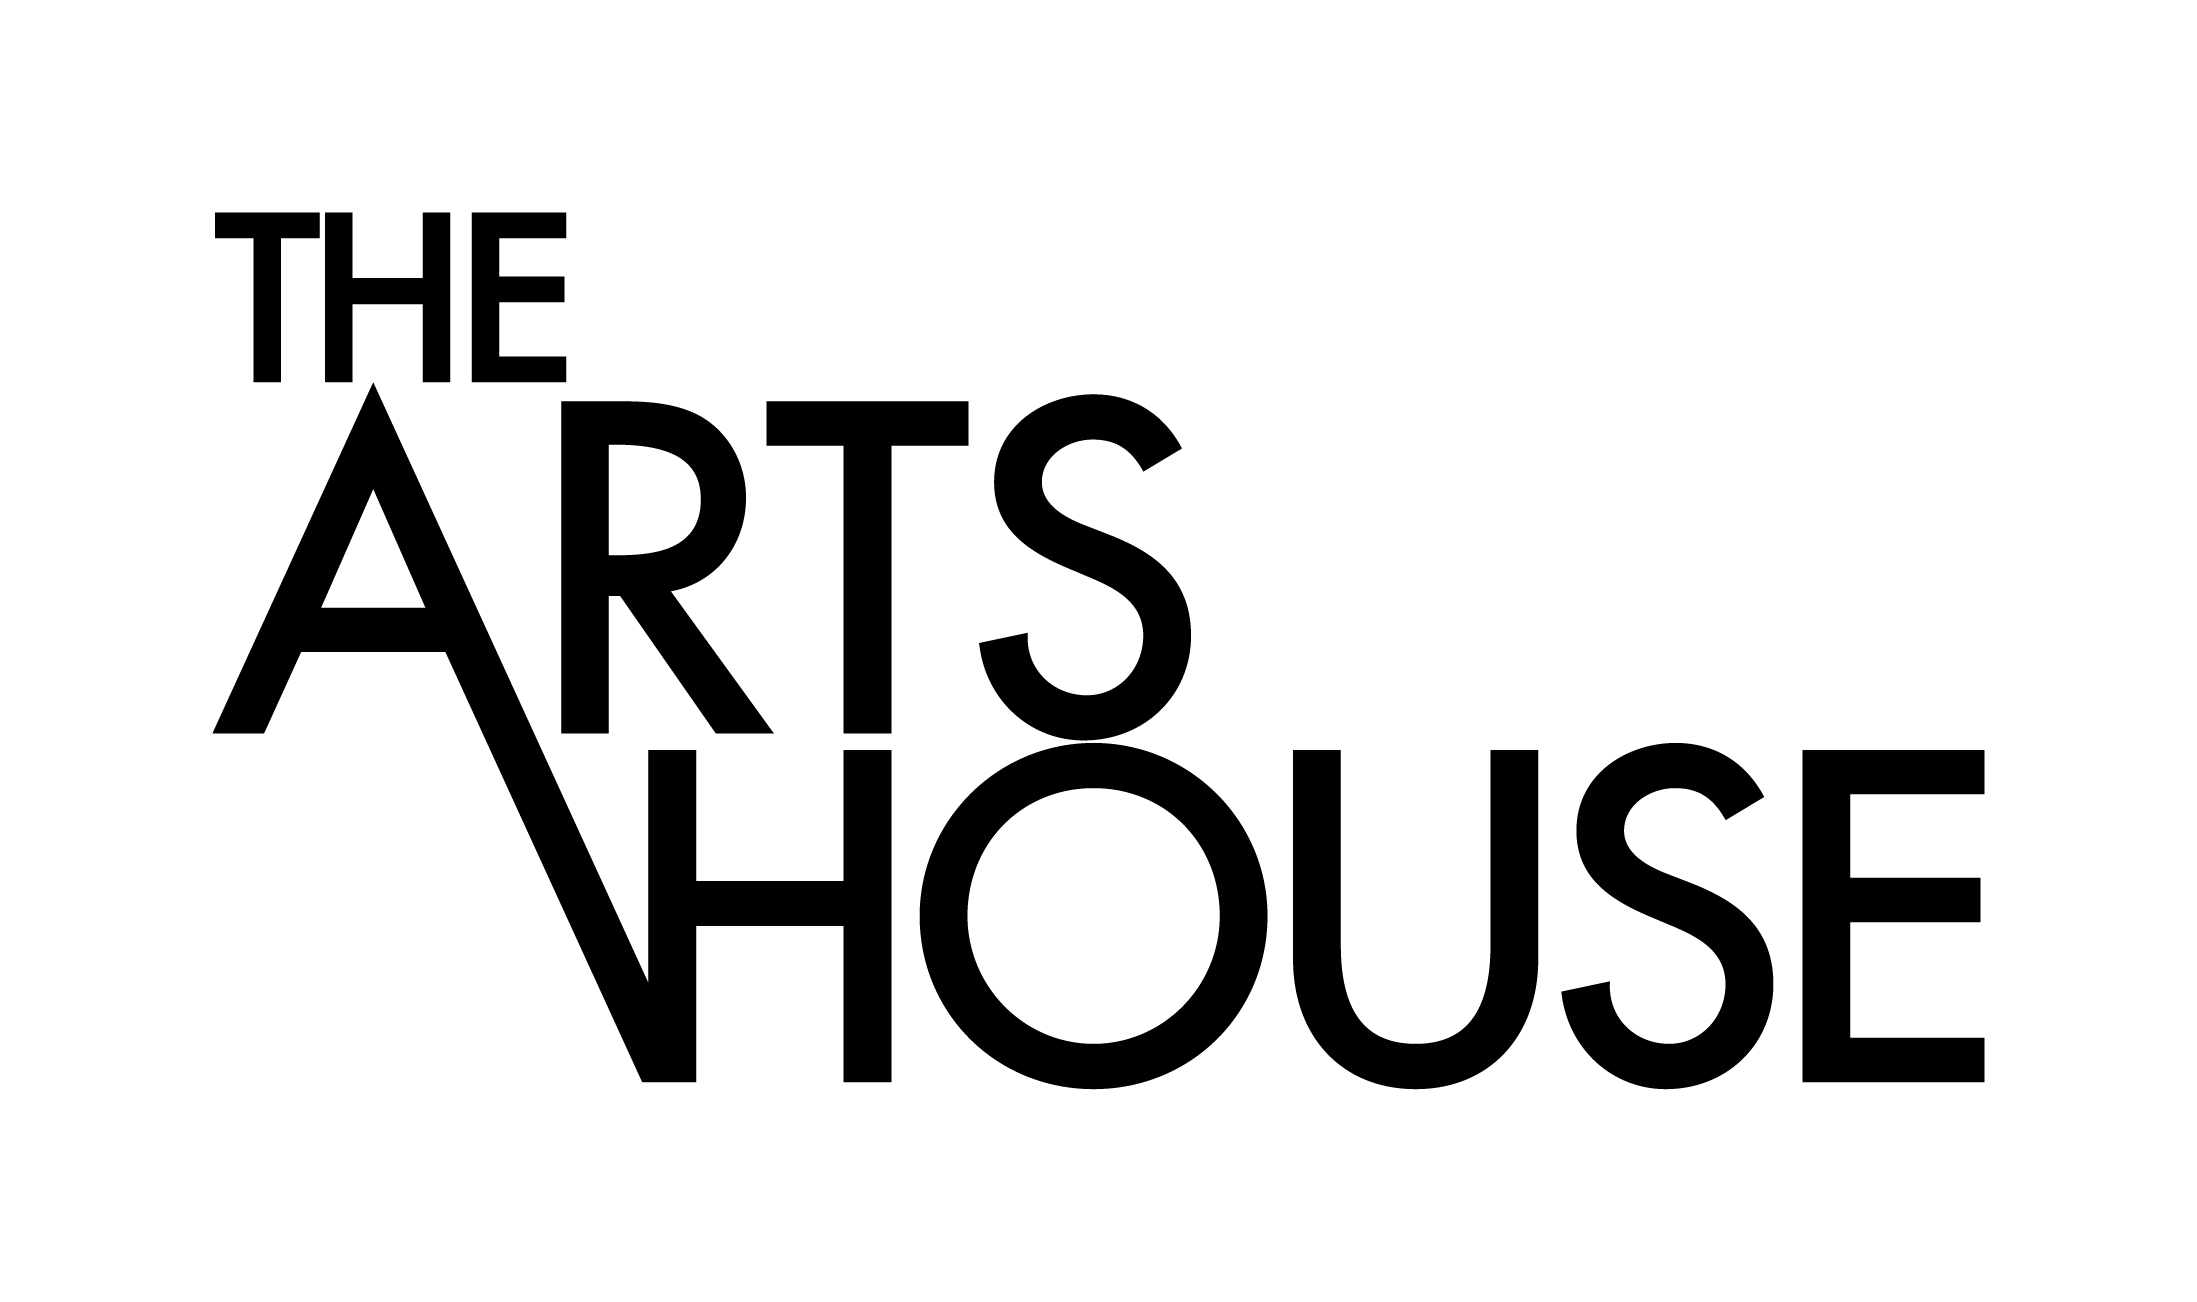 The-Arts-House-Logo-New-black-01